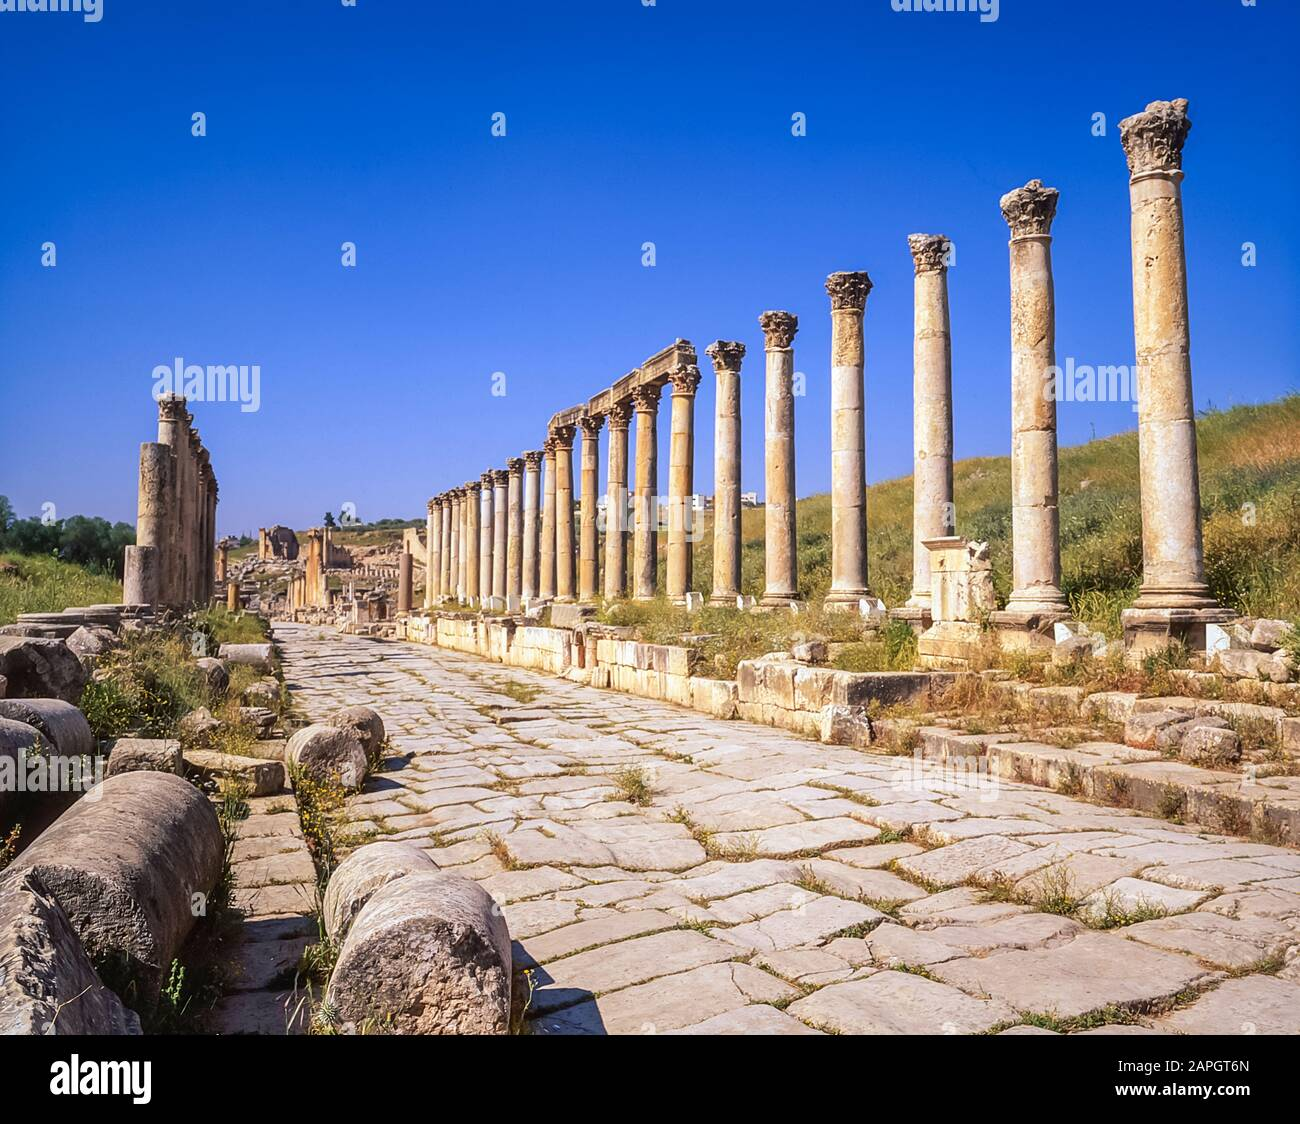 Jordan. Colonnades on the once main street of the ancient Roman City of Jerash not far from the Jordan capital city of Amman in the Middle East Stock Photo